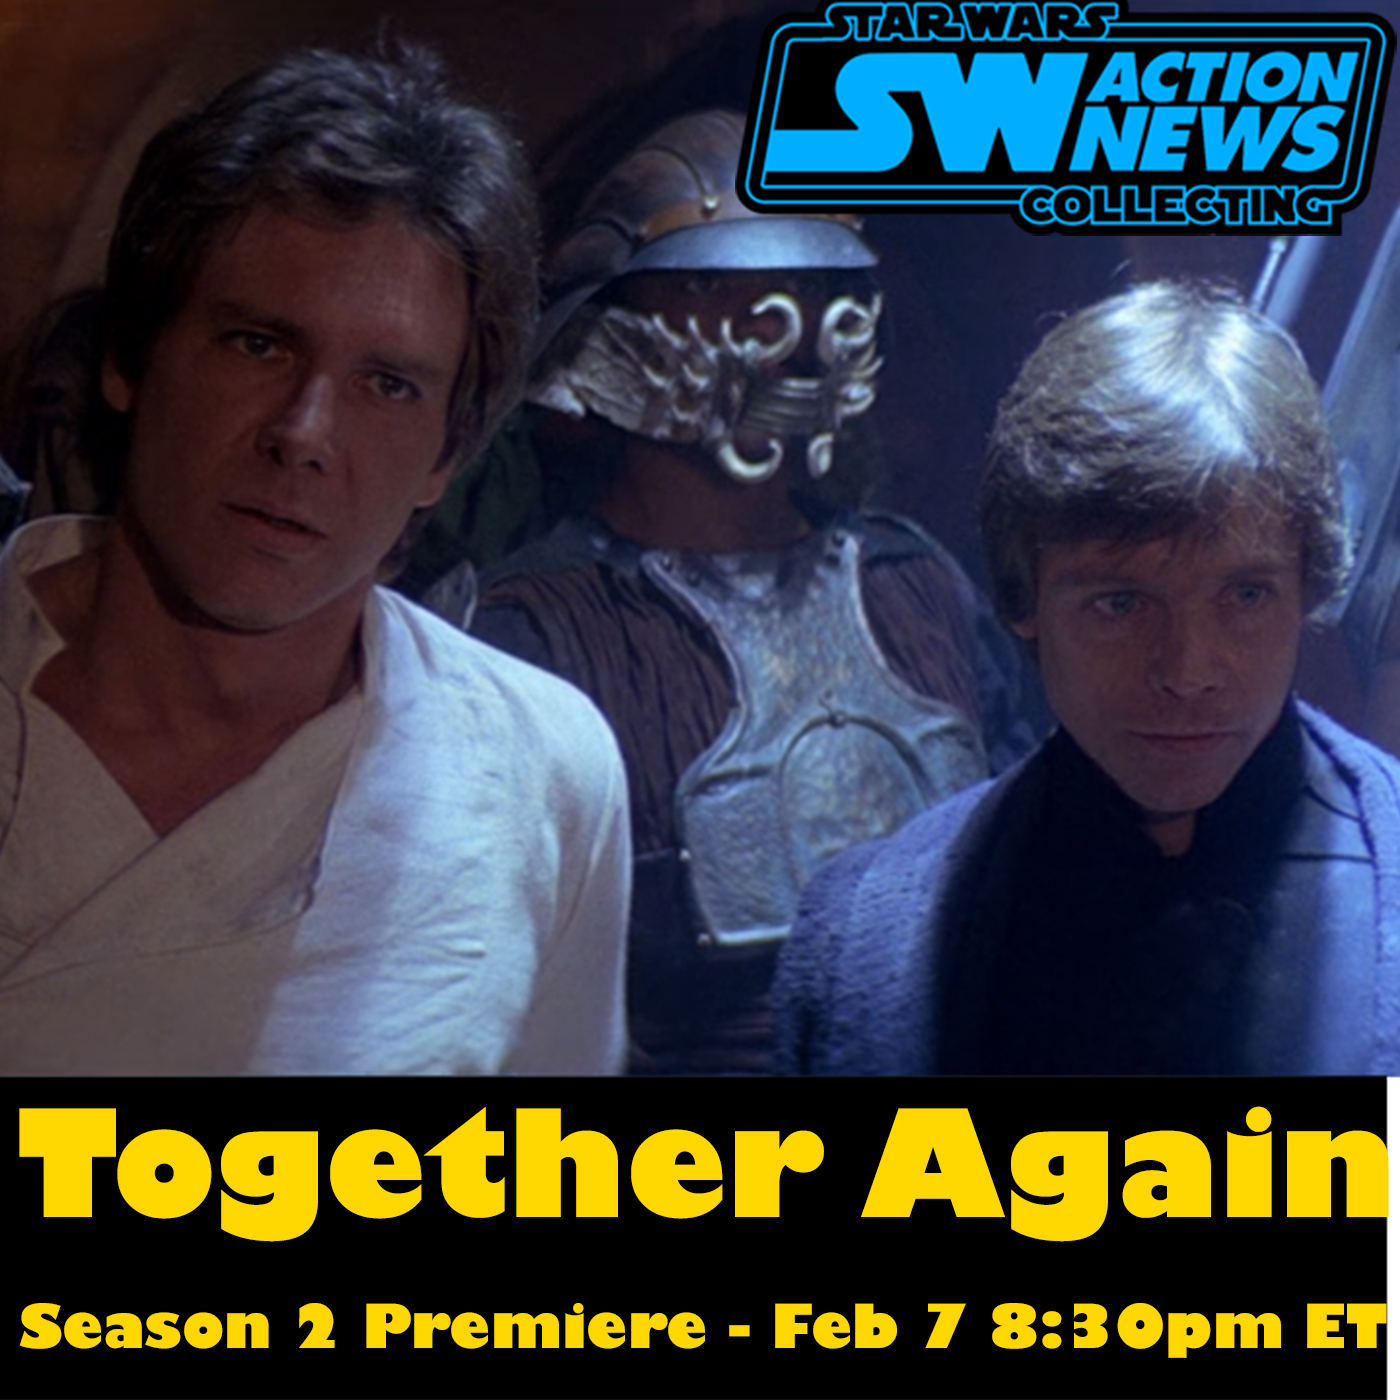 Feb 7, 2019: Together Again - Video Podcast